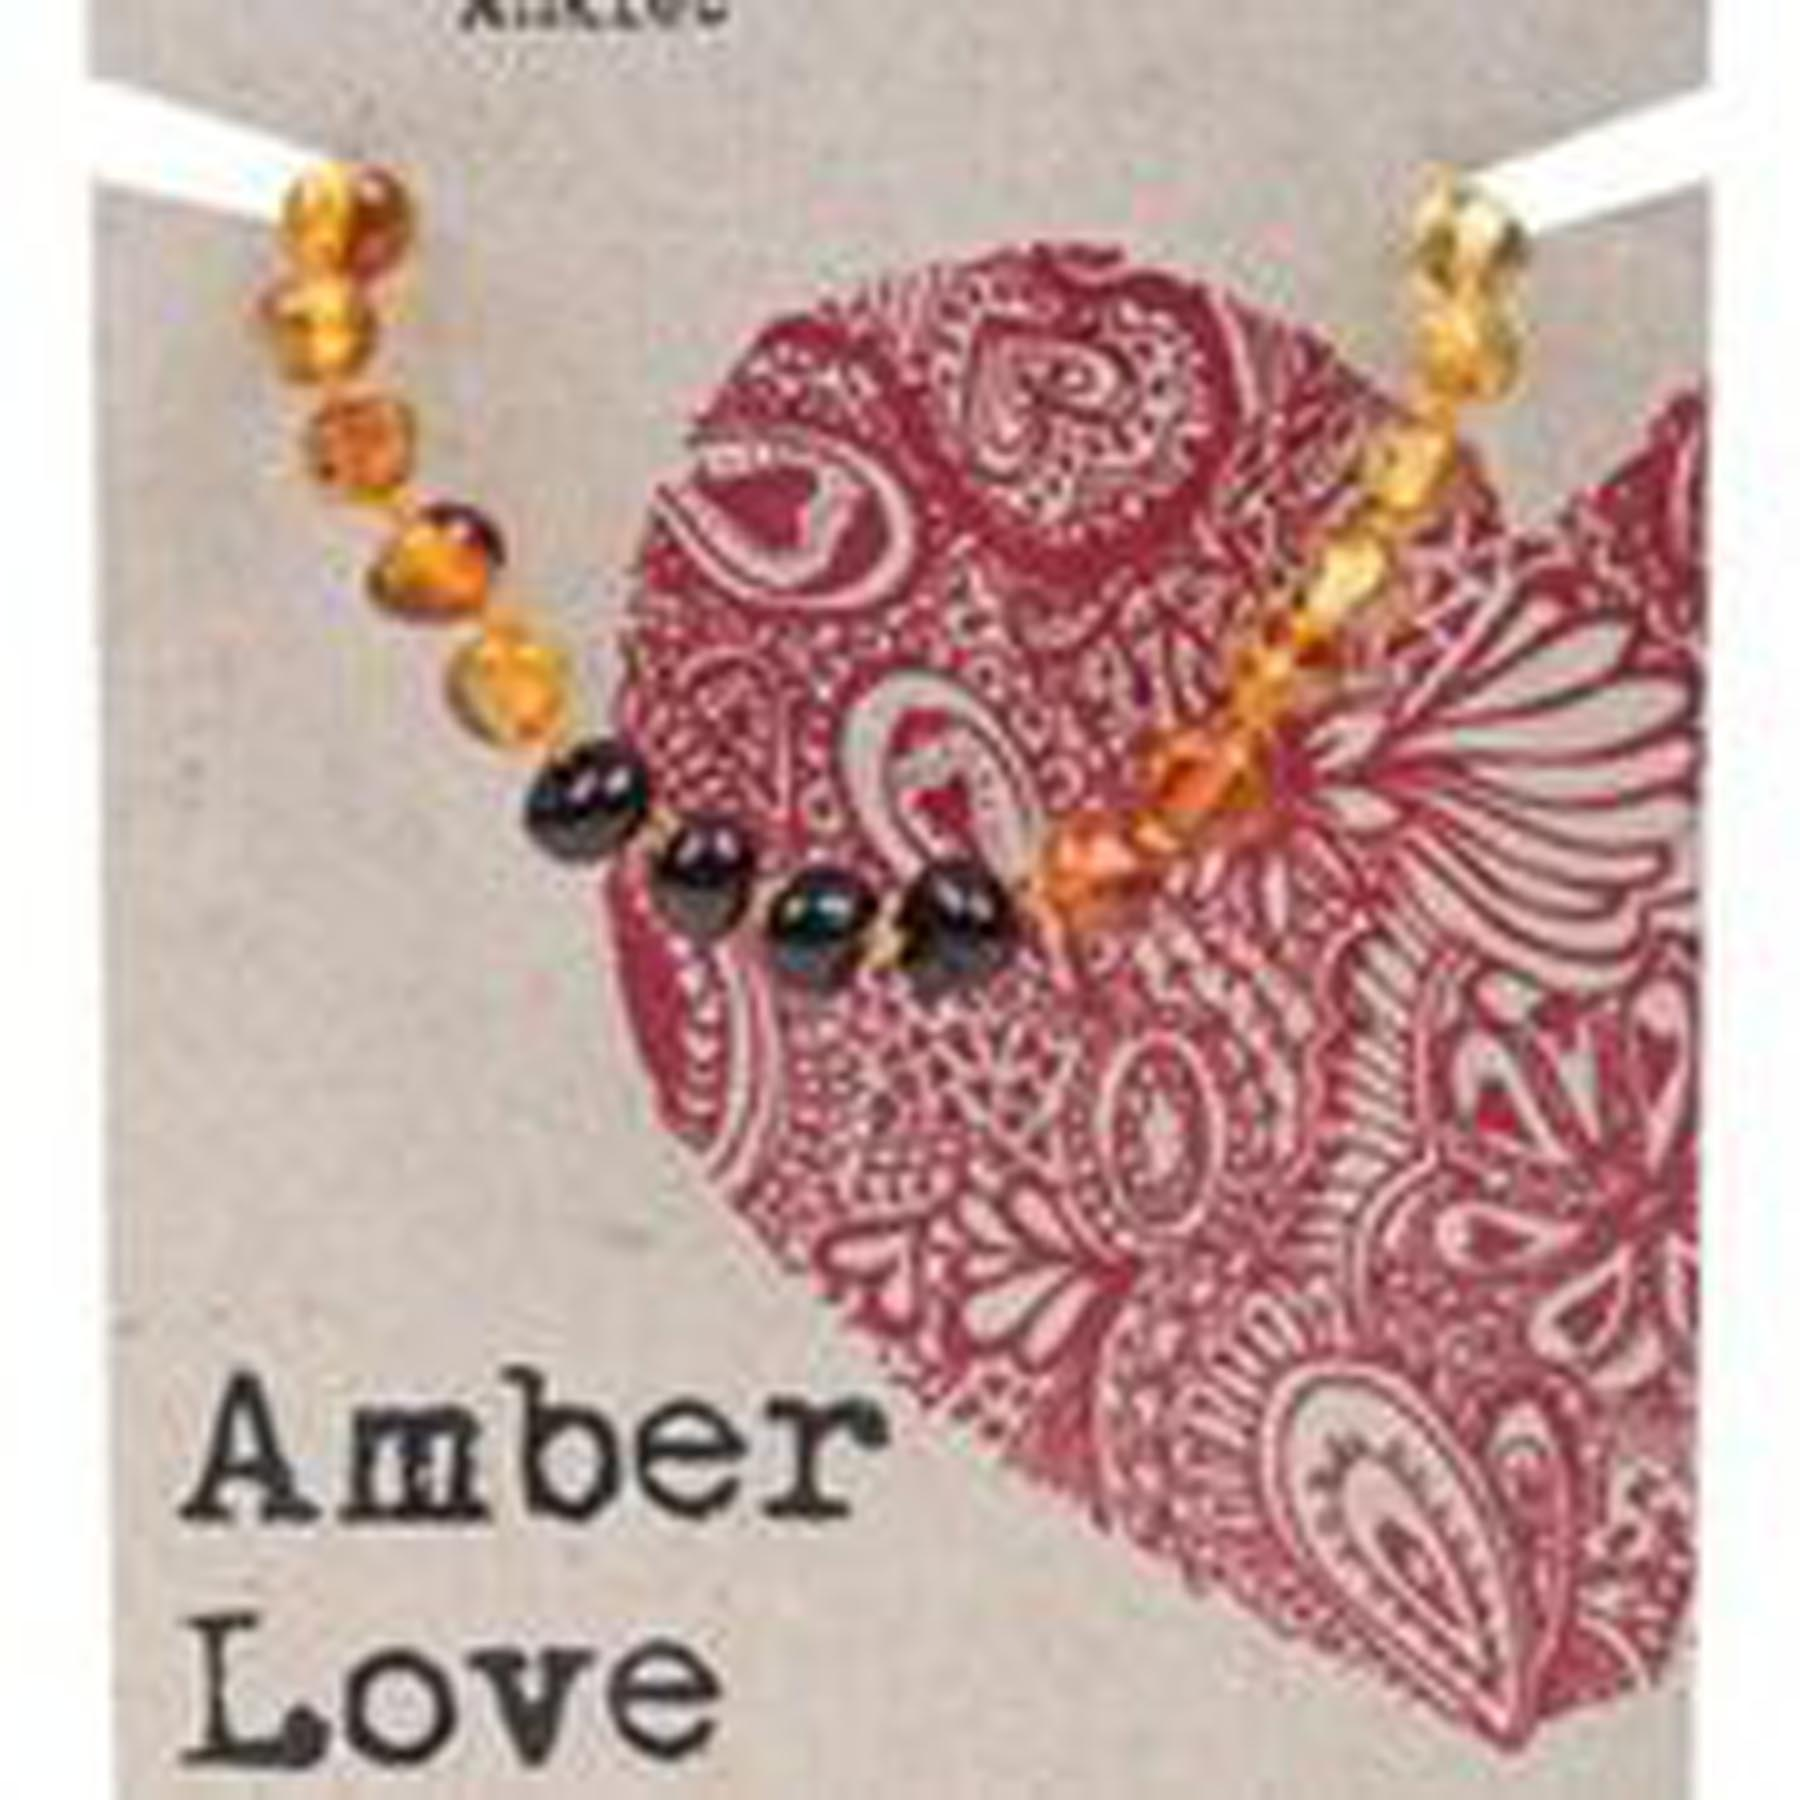 AMBER LOVE CHILD BRACELET / ANKLET RAINBOW LOVE www.motherbynature.com.au